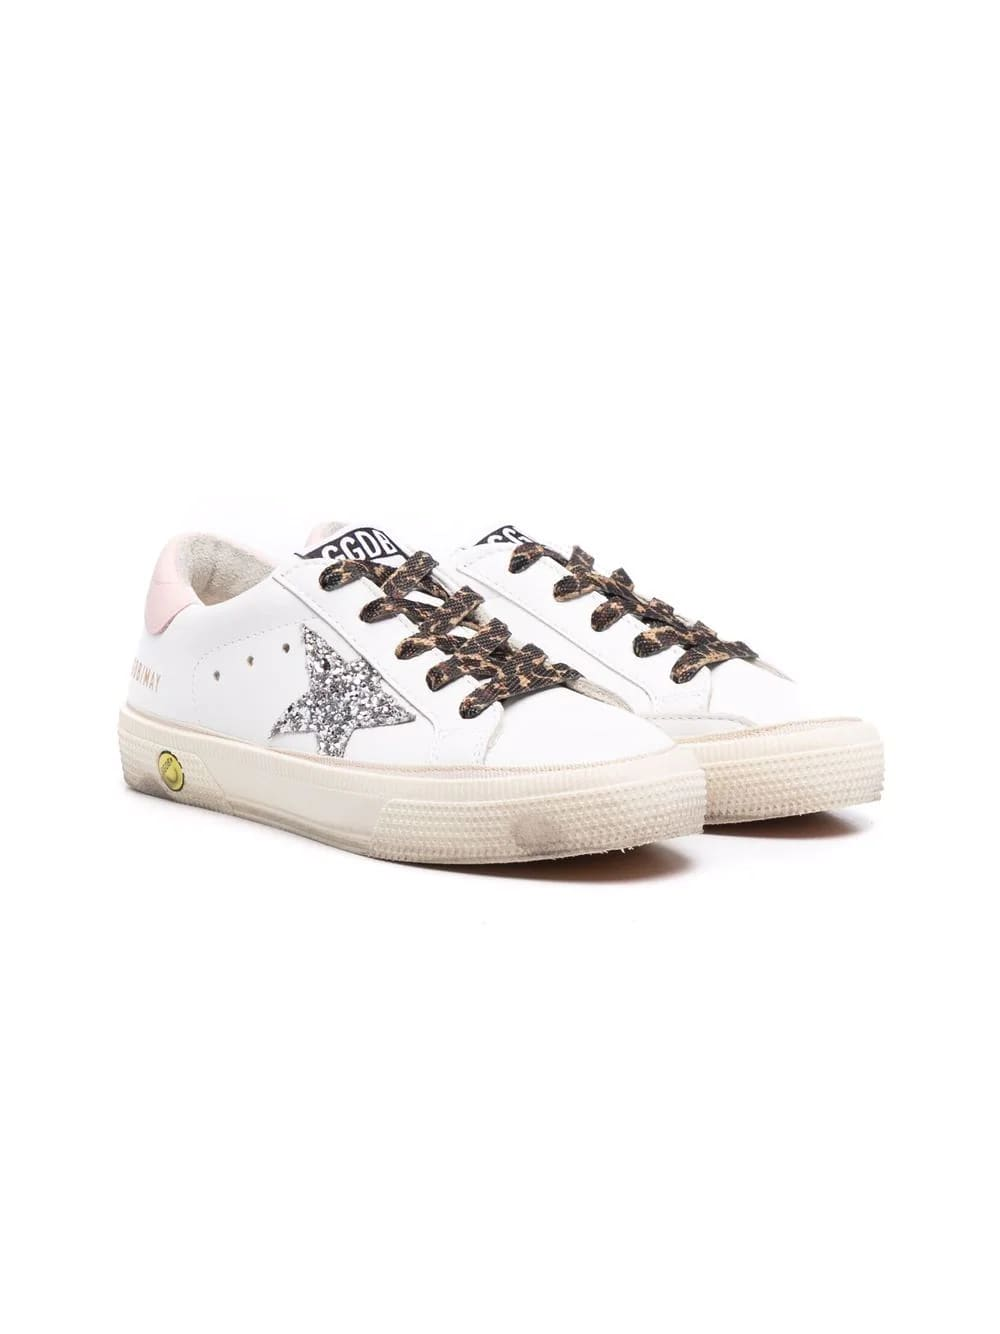 Golden Goose Junior White Super-star Sneakers With Animalier Laces And Silver Glitter Star